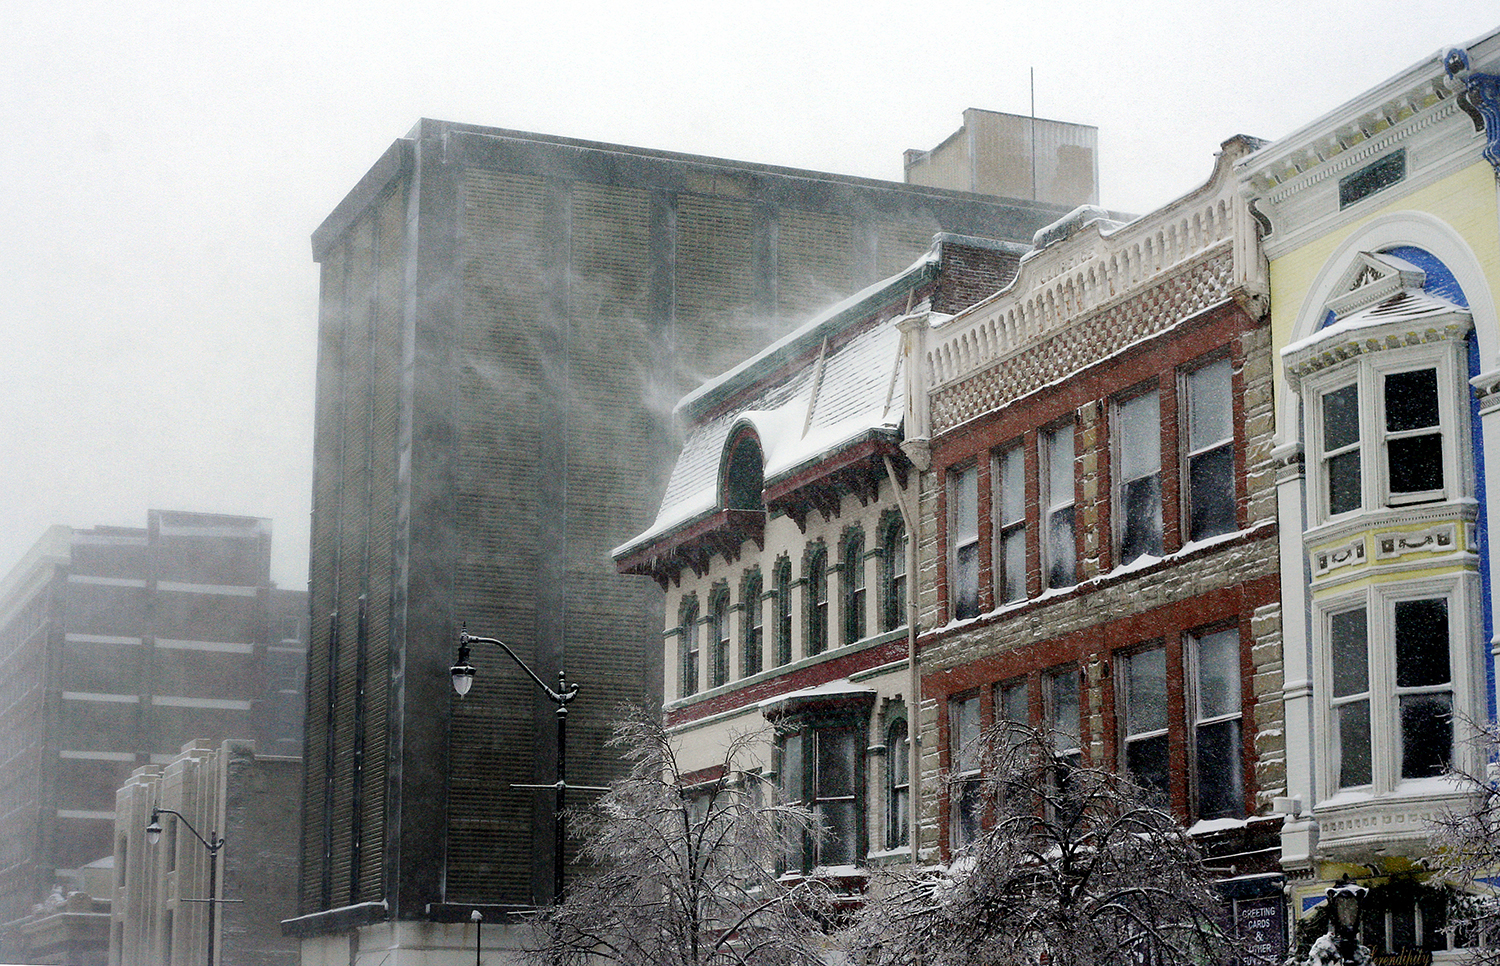 Snow blows off buildings onSixth Street during winter storm, December 2006. Kendra Helmer/The State Journal-Register